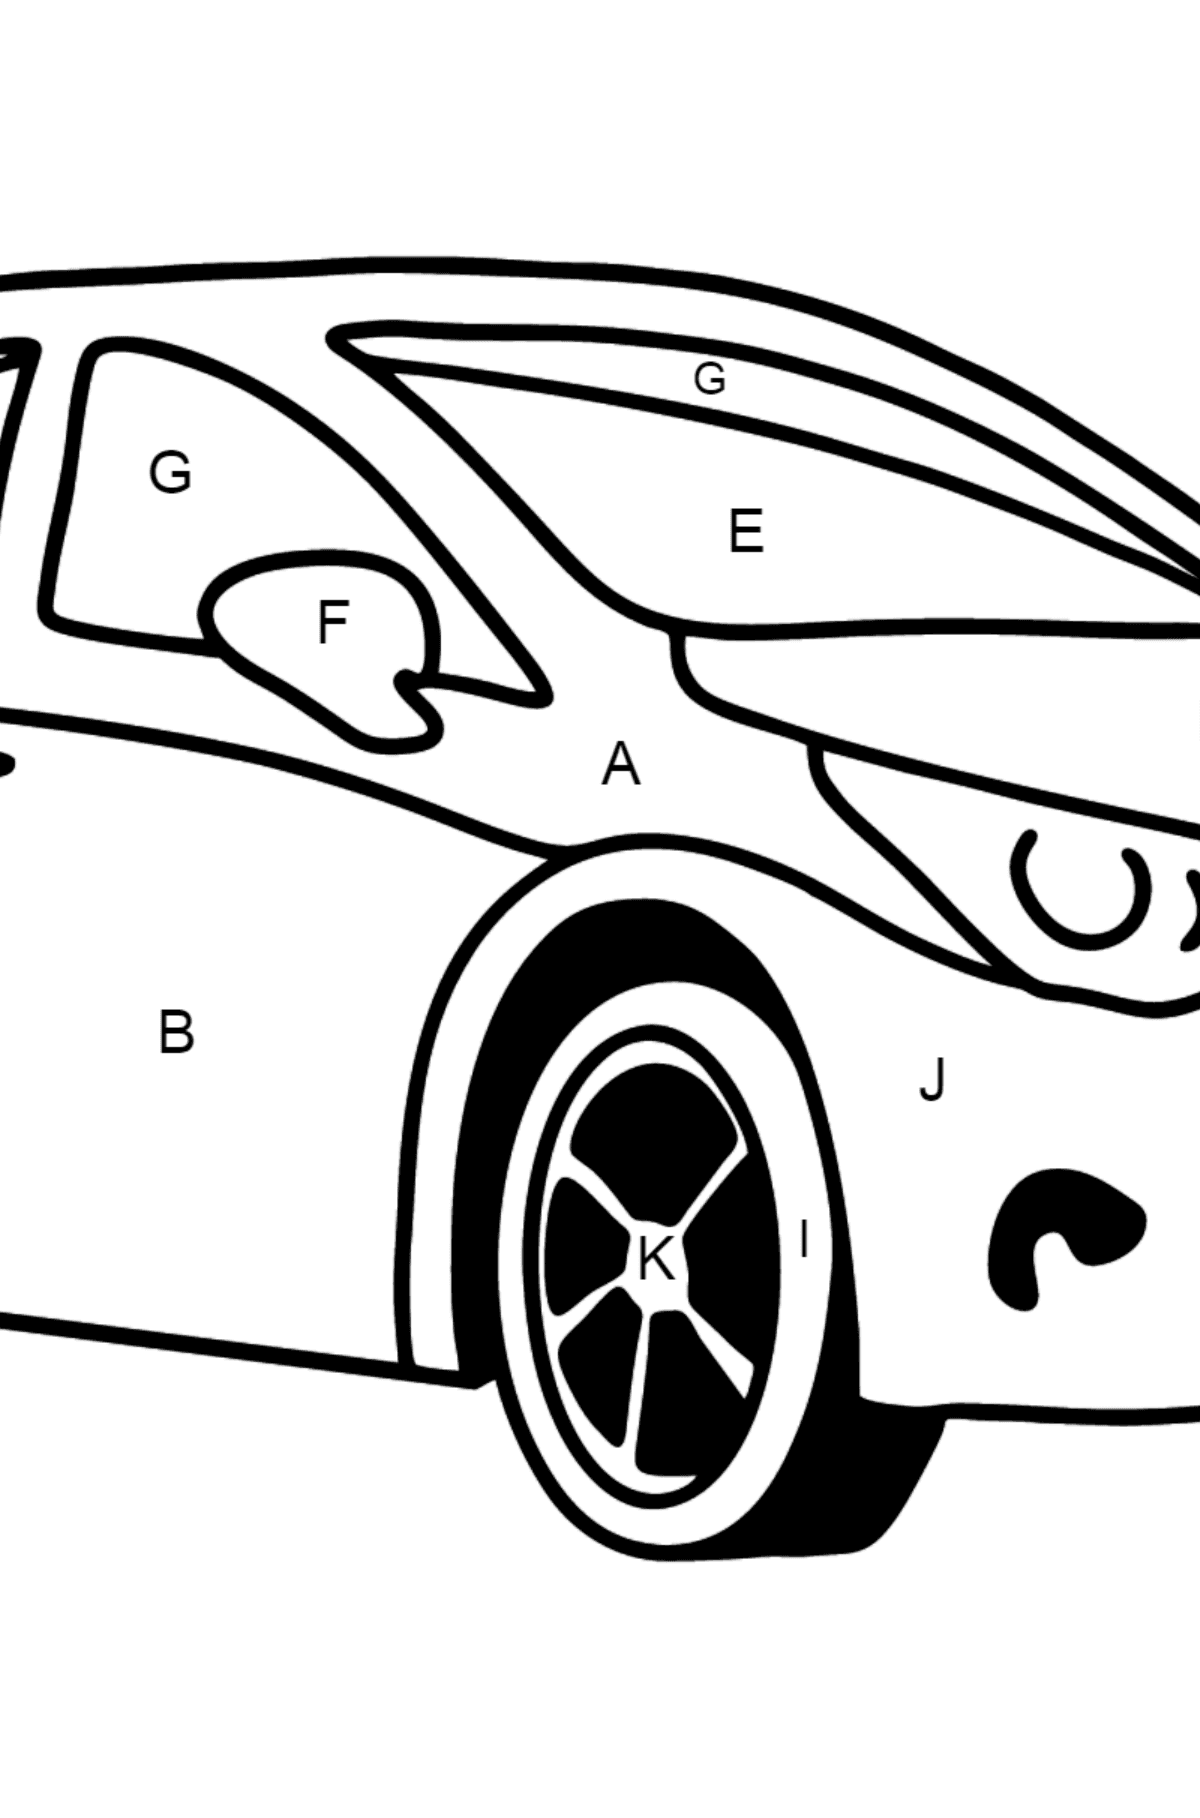 Toyota Avensis Car coloring page - Coloring by Letters for Kids